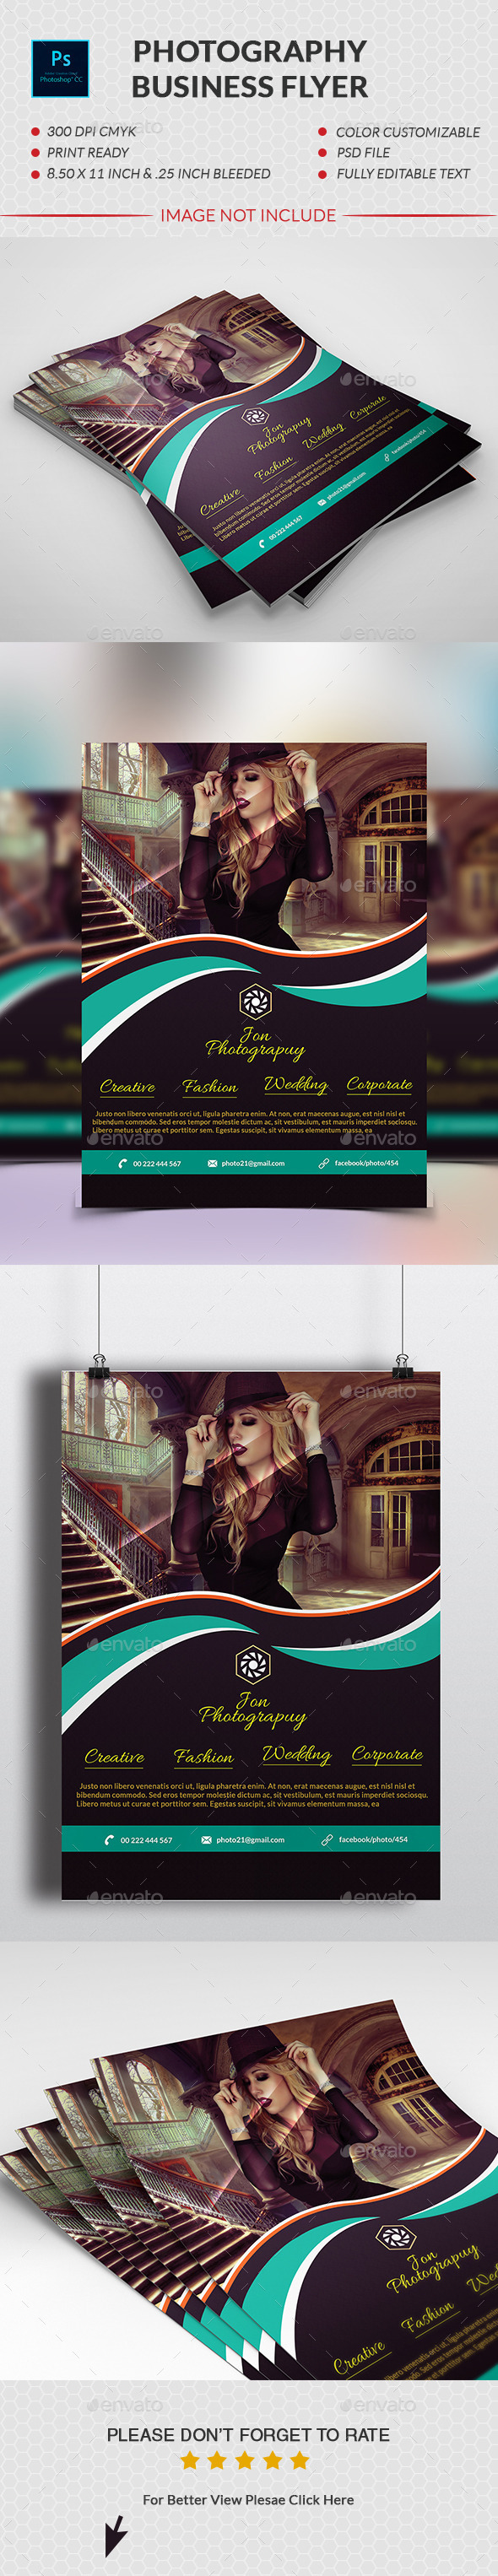 GraphicRiver Photography Business Flyer 10985628